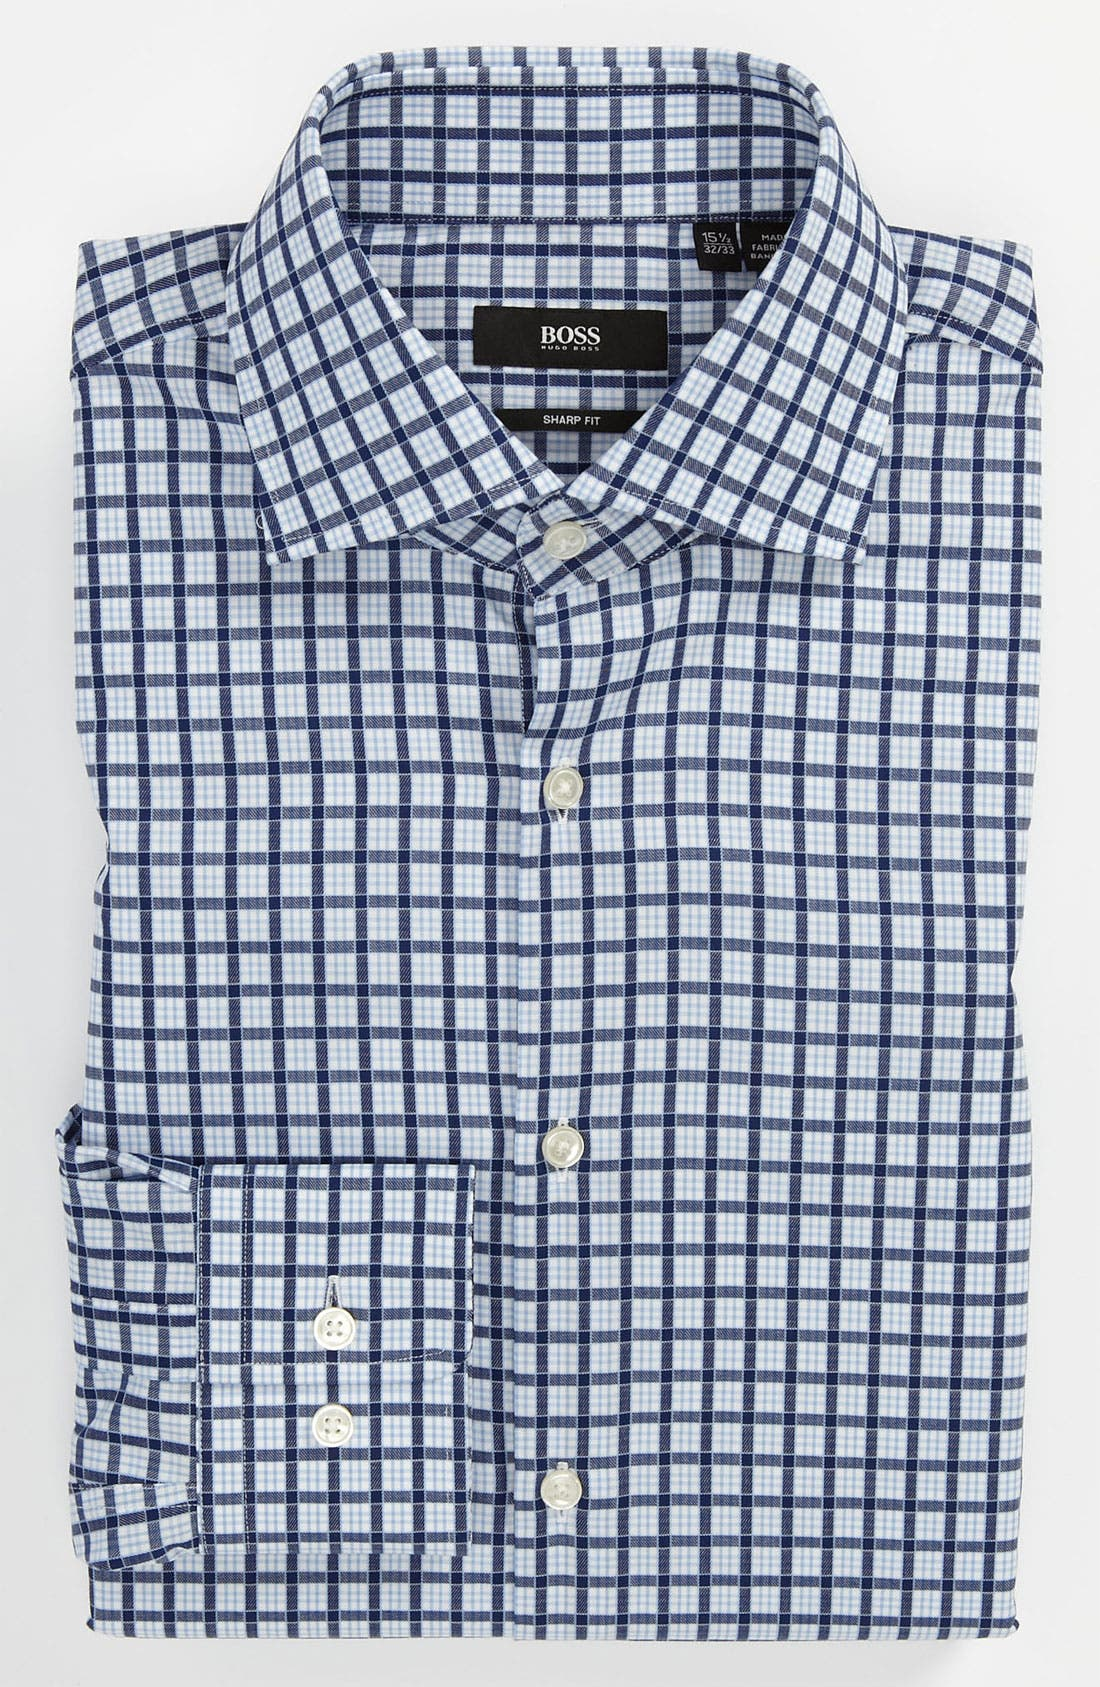 Alternate Image 1 Selected - BOSS HUGO BOSS Sharp Fit Dress Shirt (Online Only)